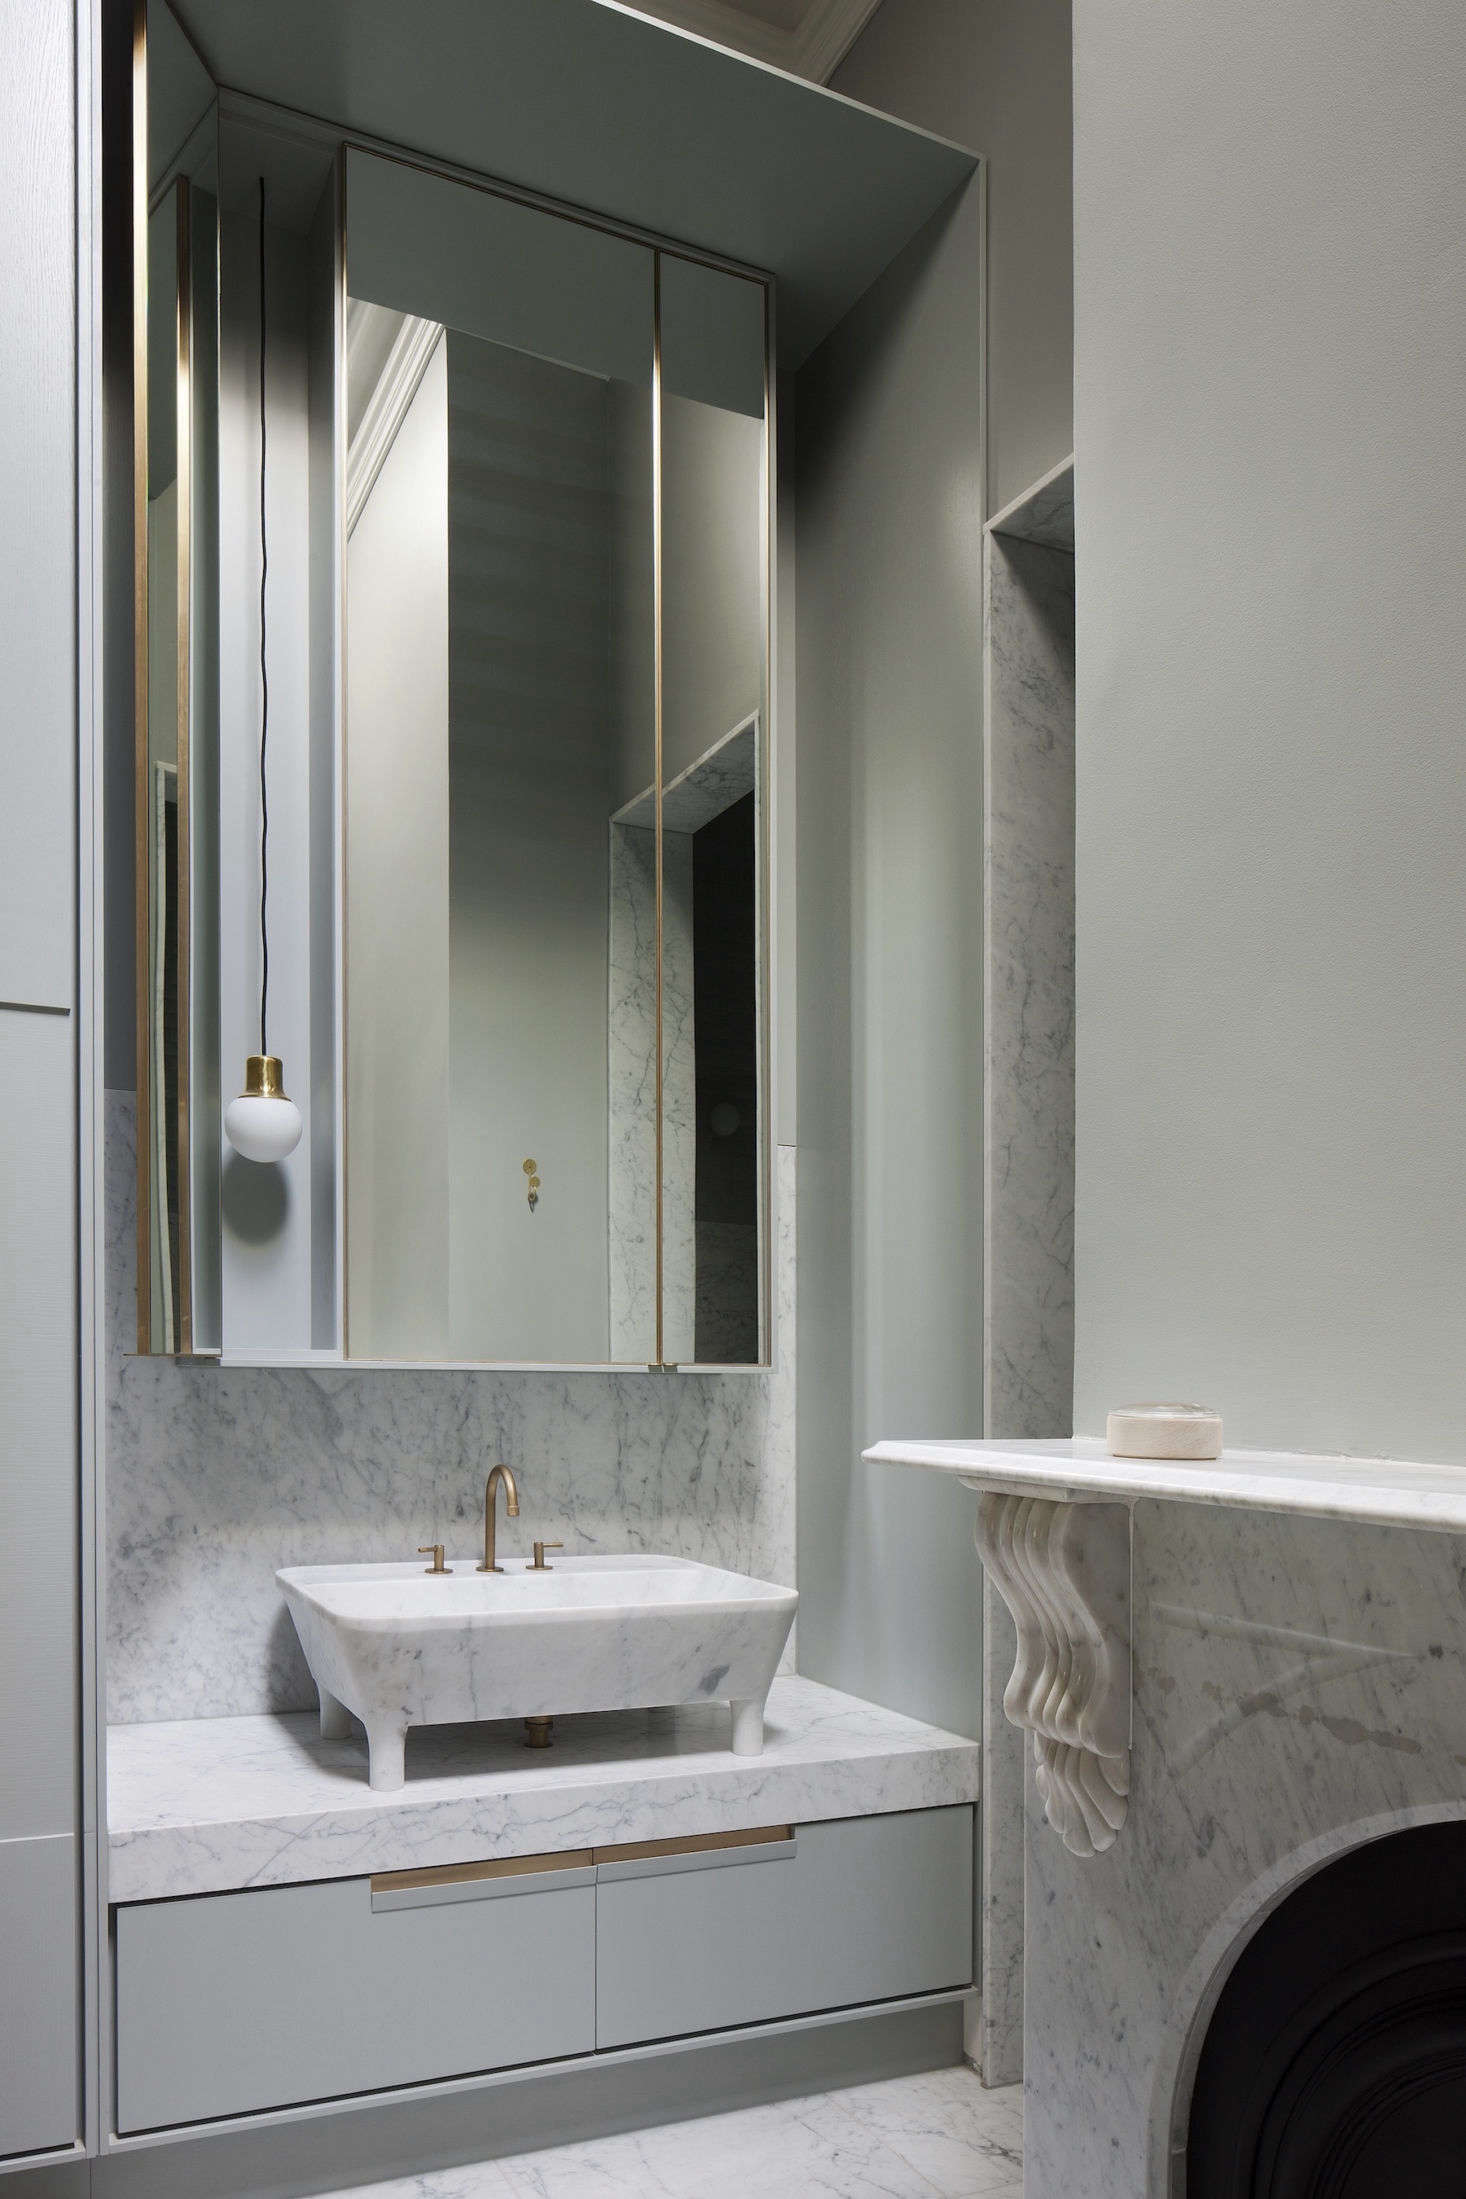 The master bath has a custom marble sink, backsplash, and fireplace surround. The faucet is from Yokato (seeYokato Bath and Kitchen Fixtures, Made in Australia for more).